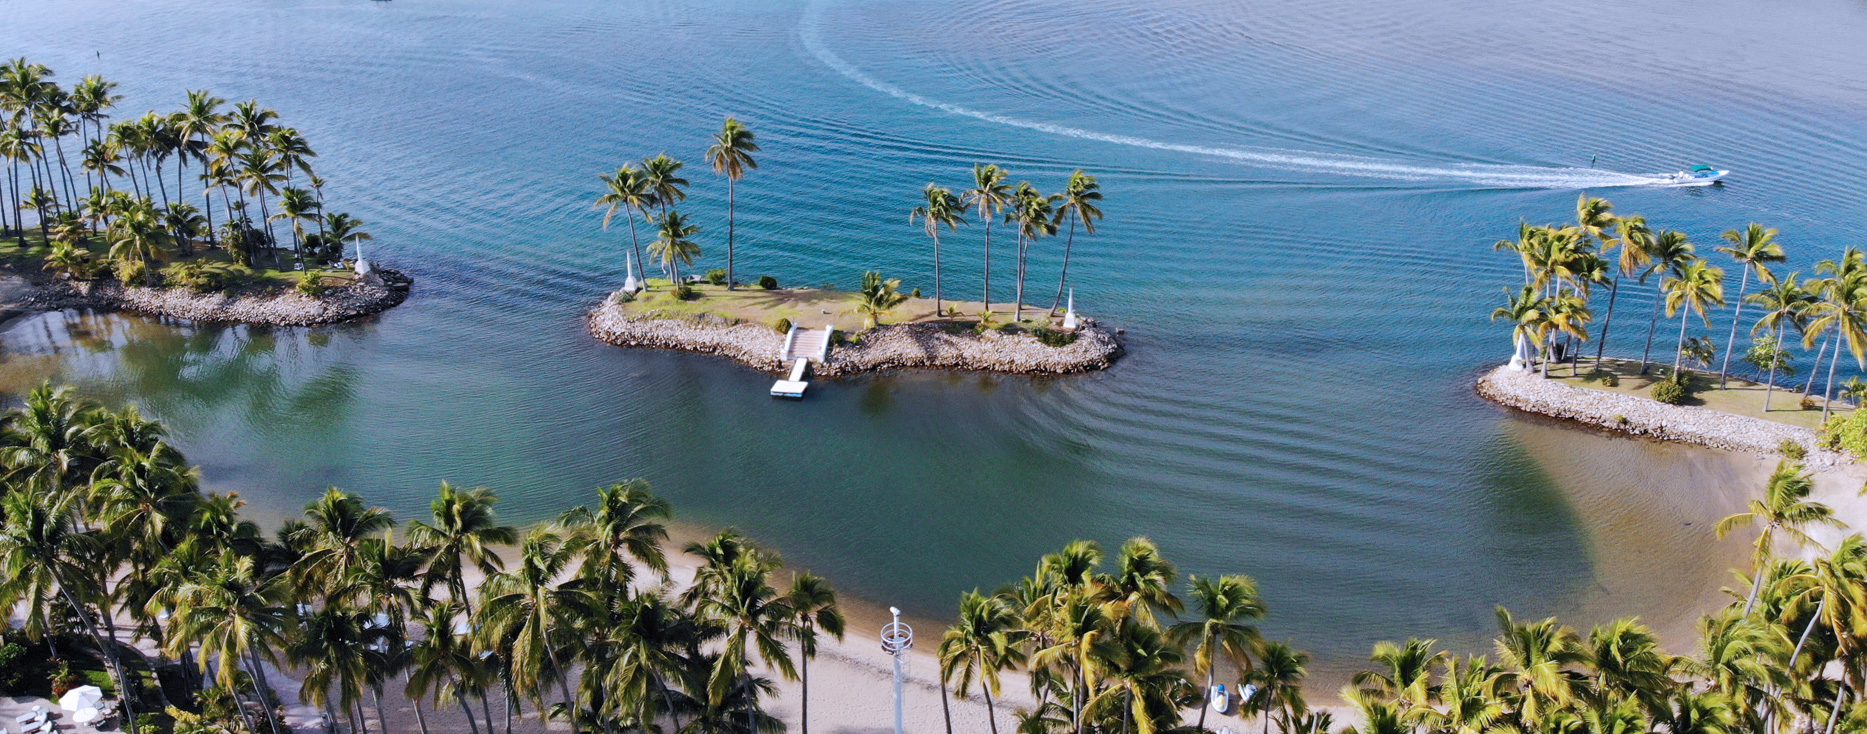 Aerial view of water, boat, and palm trees | Mexico Cruising Guide | Snag-A-Slip